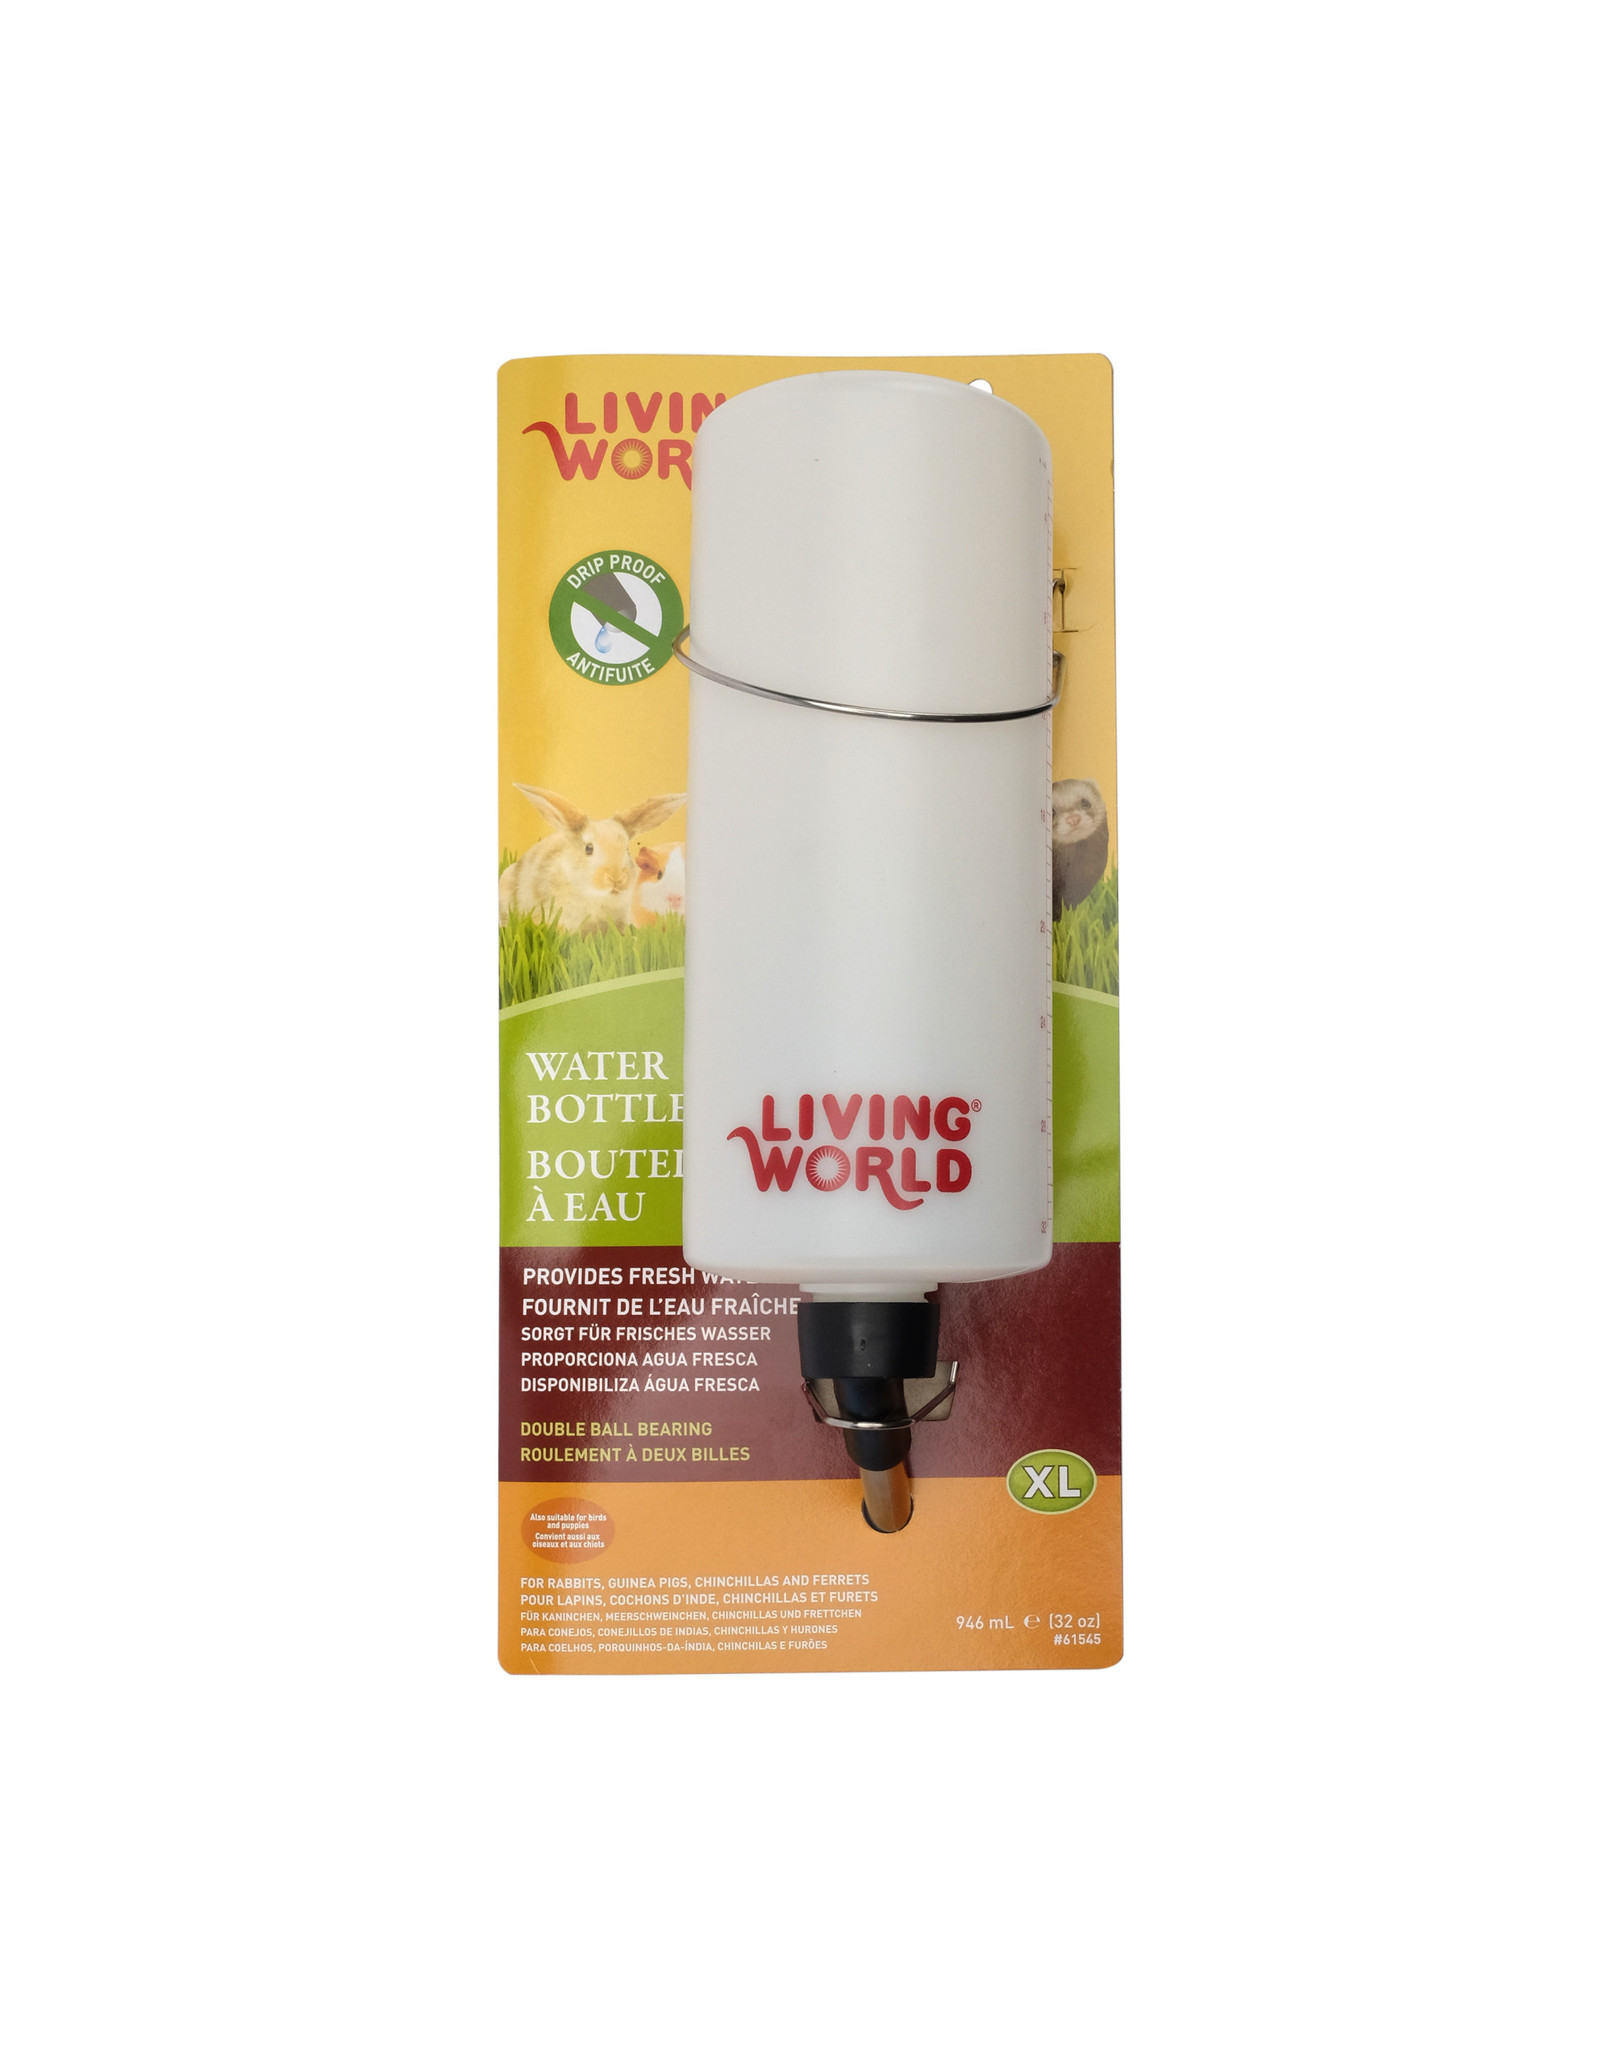 Living World Living World Water Bottle - XLarge - 946 ml (32 oz)